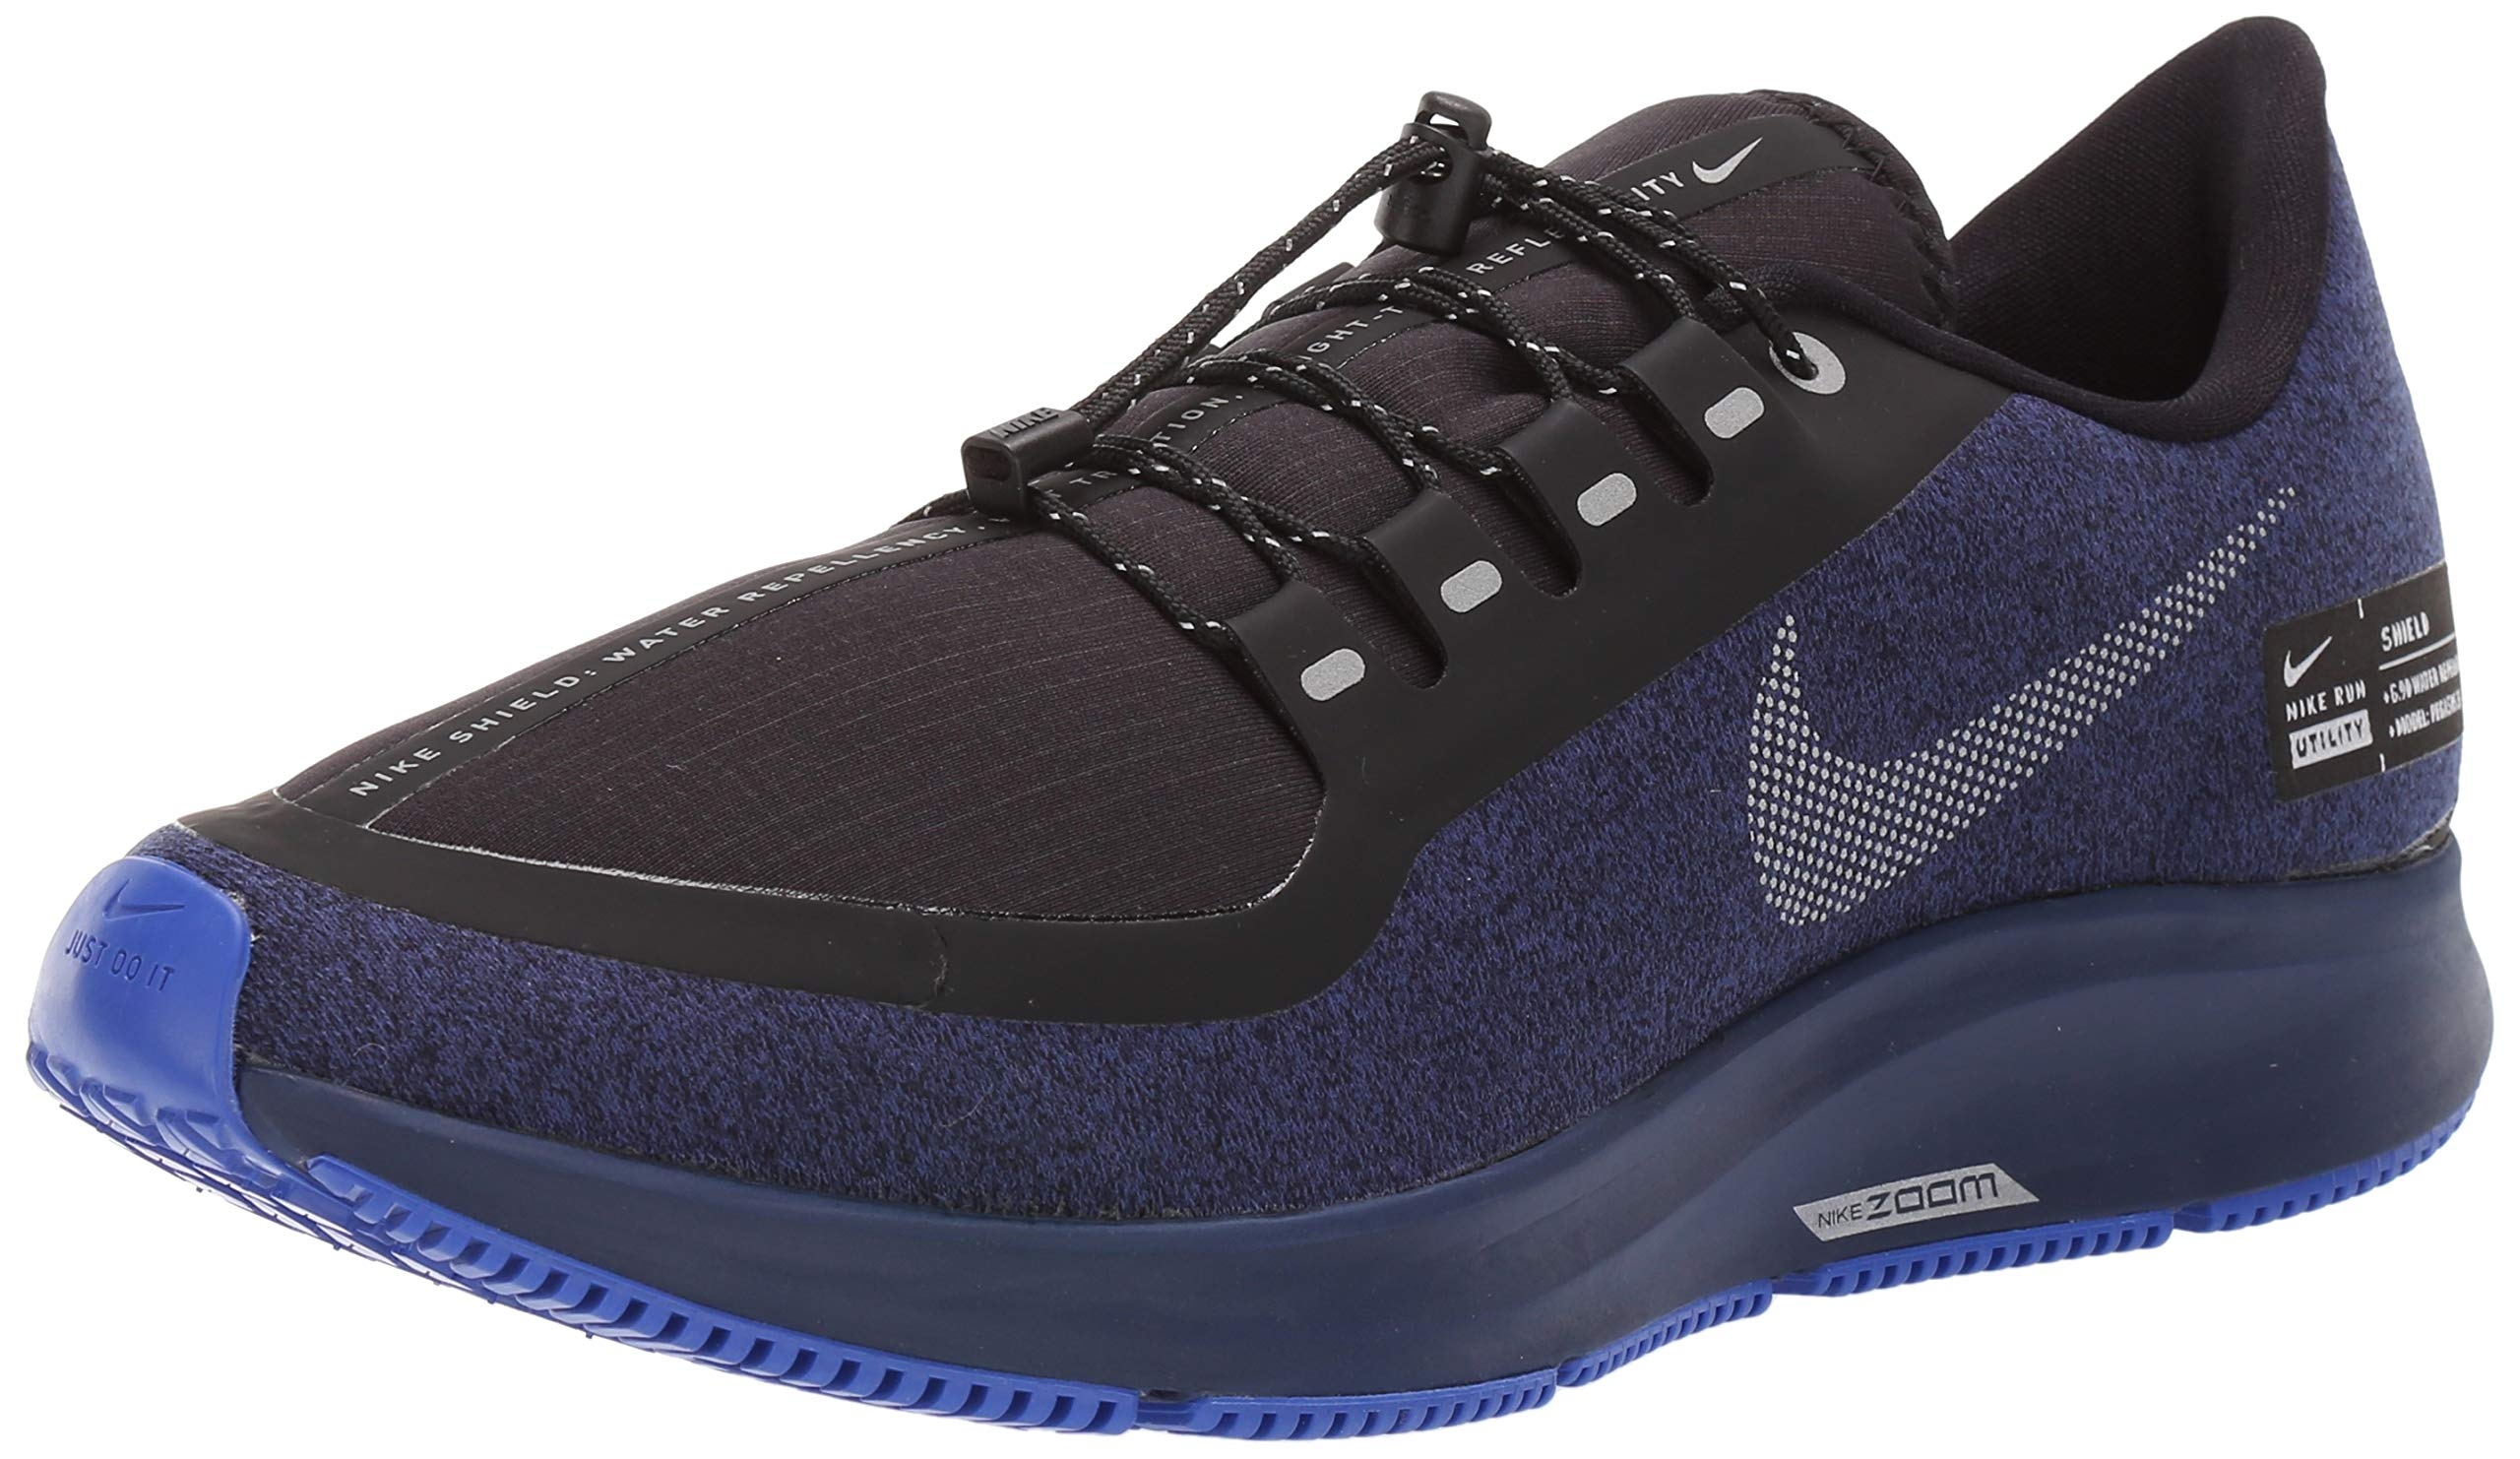 huge selection of 6f356 d3df7 Nike Air Zoom Pegasus 35 Shield Men's Running Shoe Black/Metallic  Silver-Blue Void 14.0